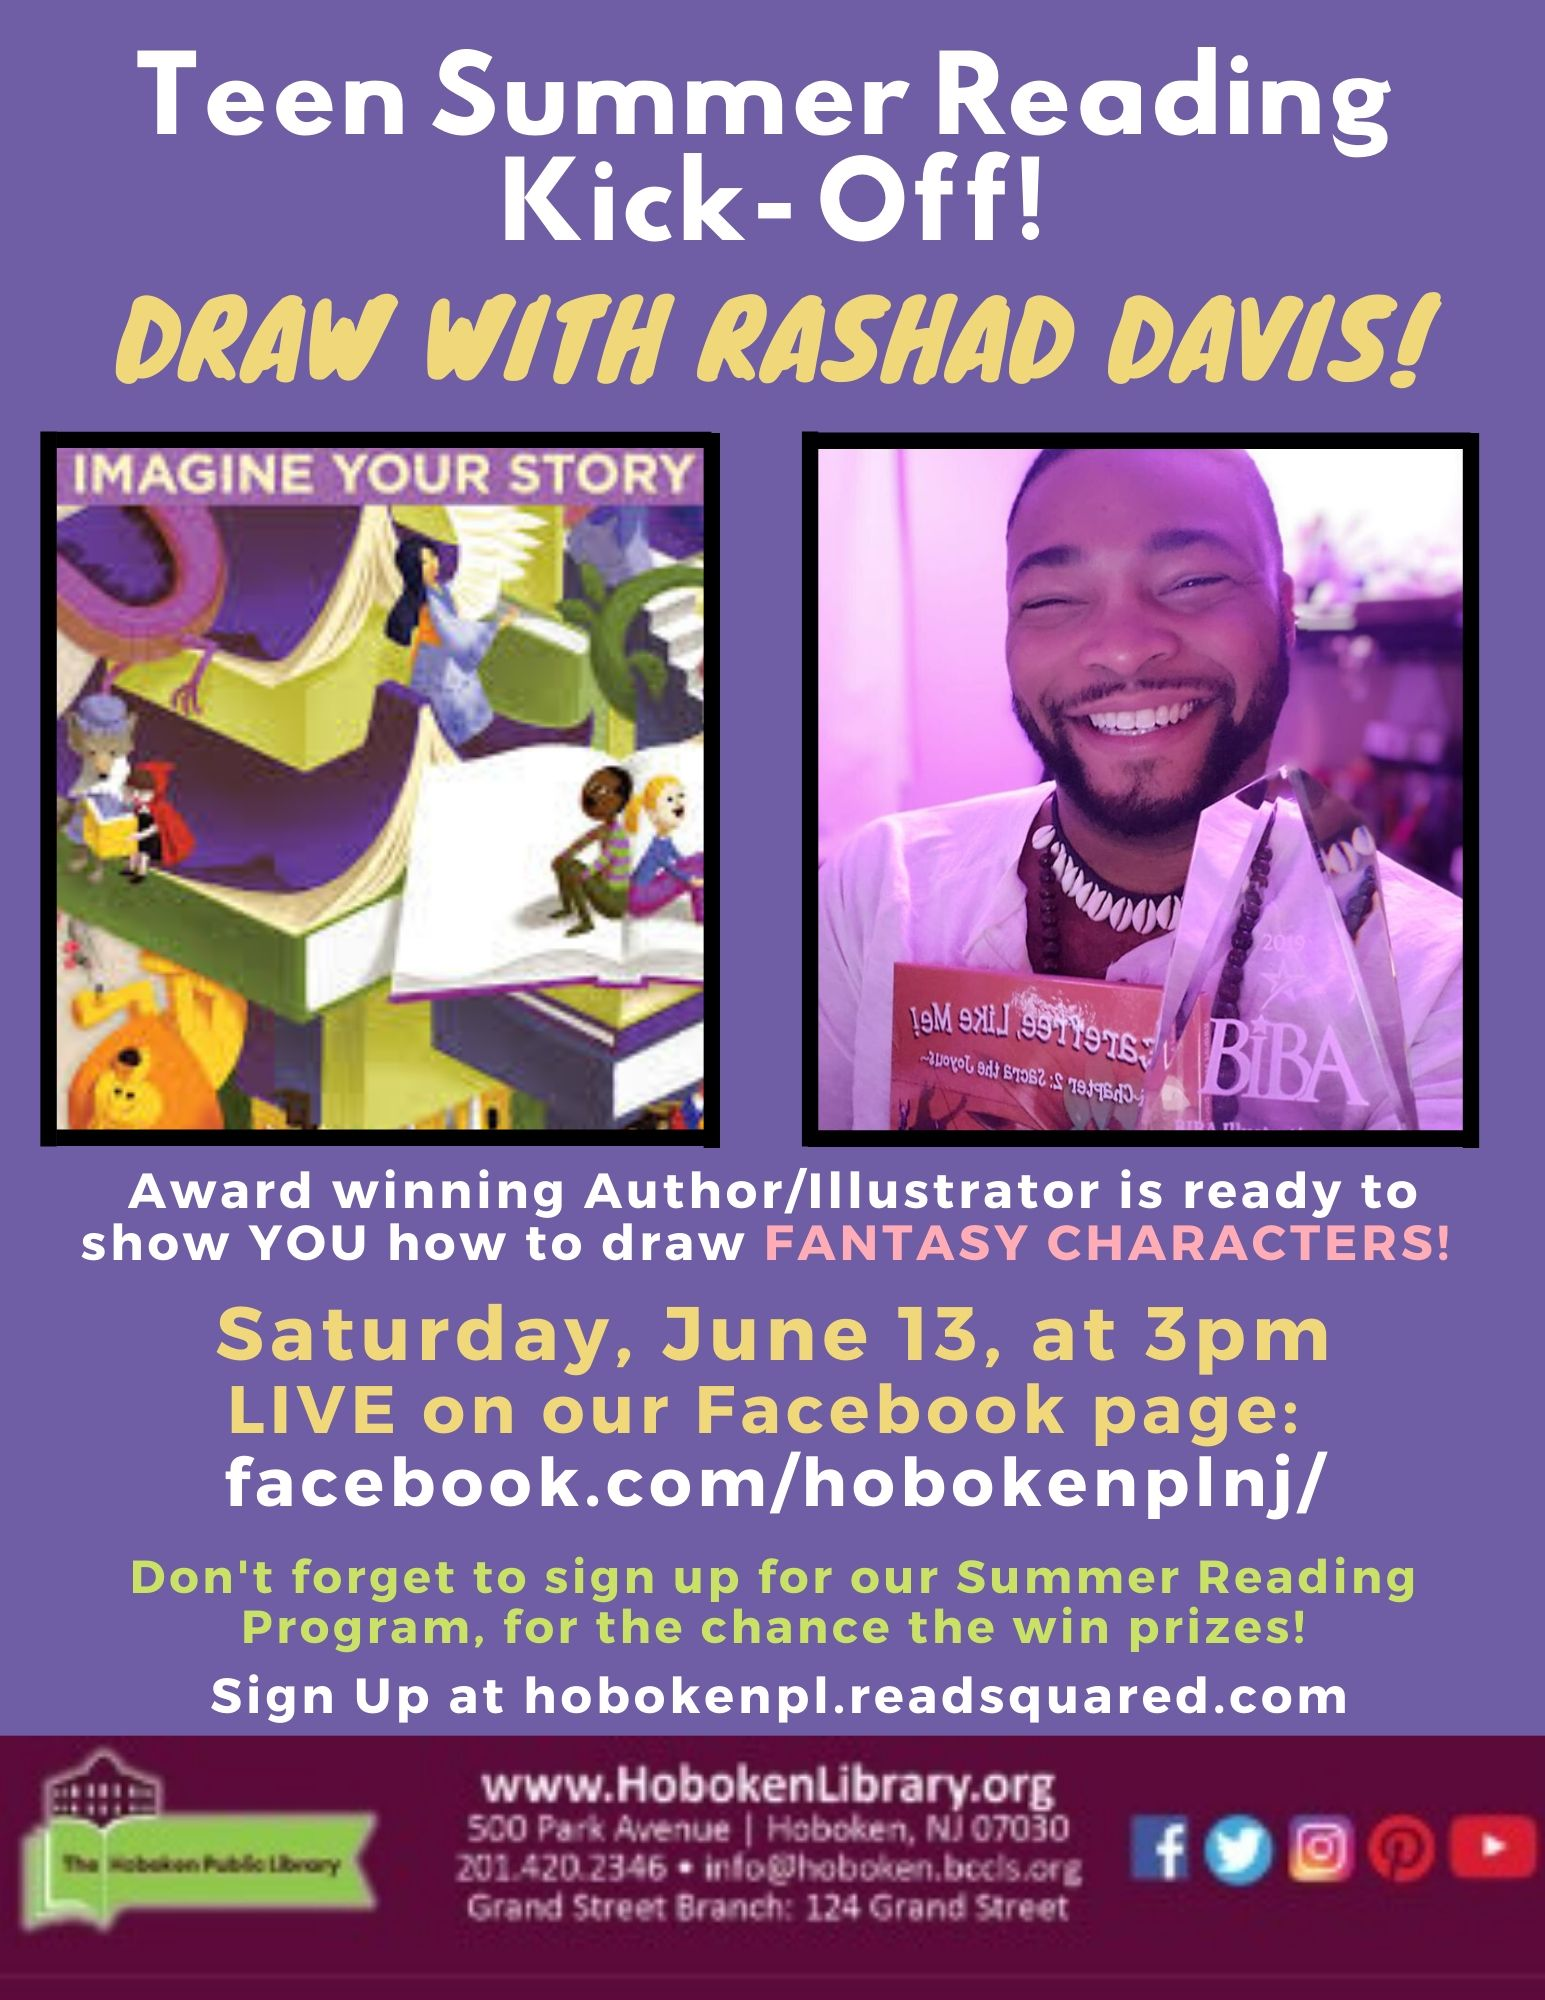 Create a Fantasy Character with Rashad Davis - Live on Facebook!